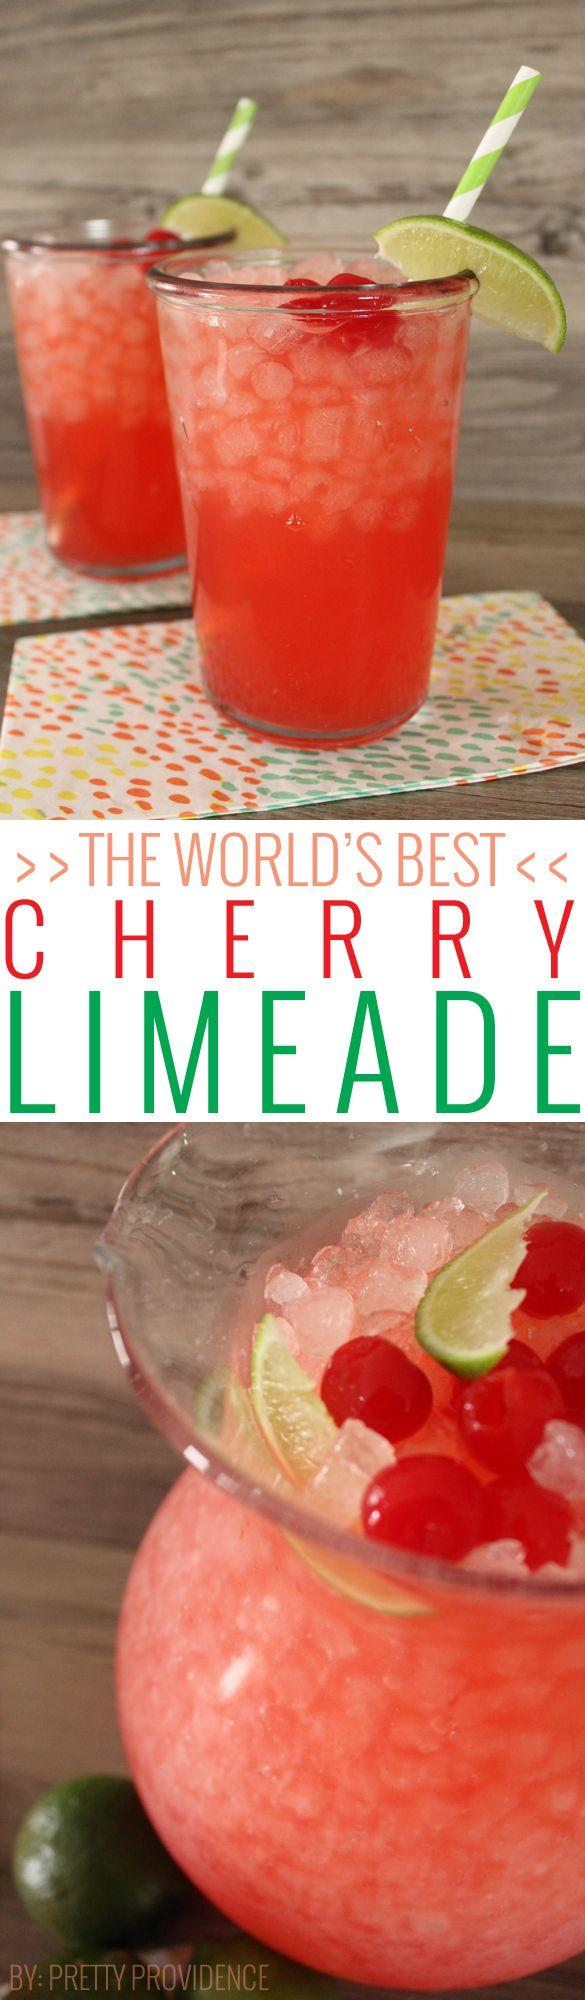 Mariage - The World's Best Cherry Limeade